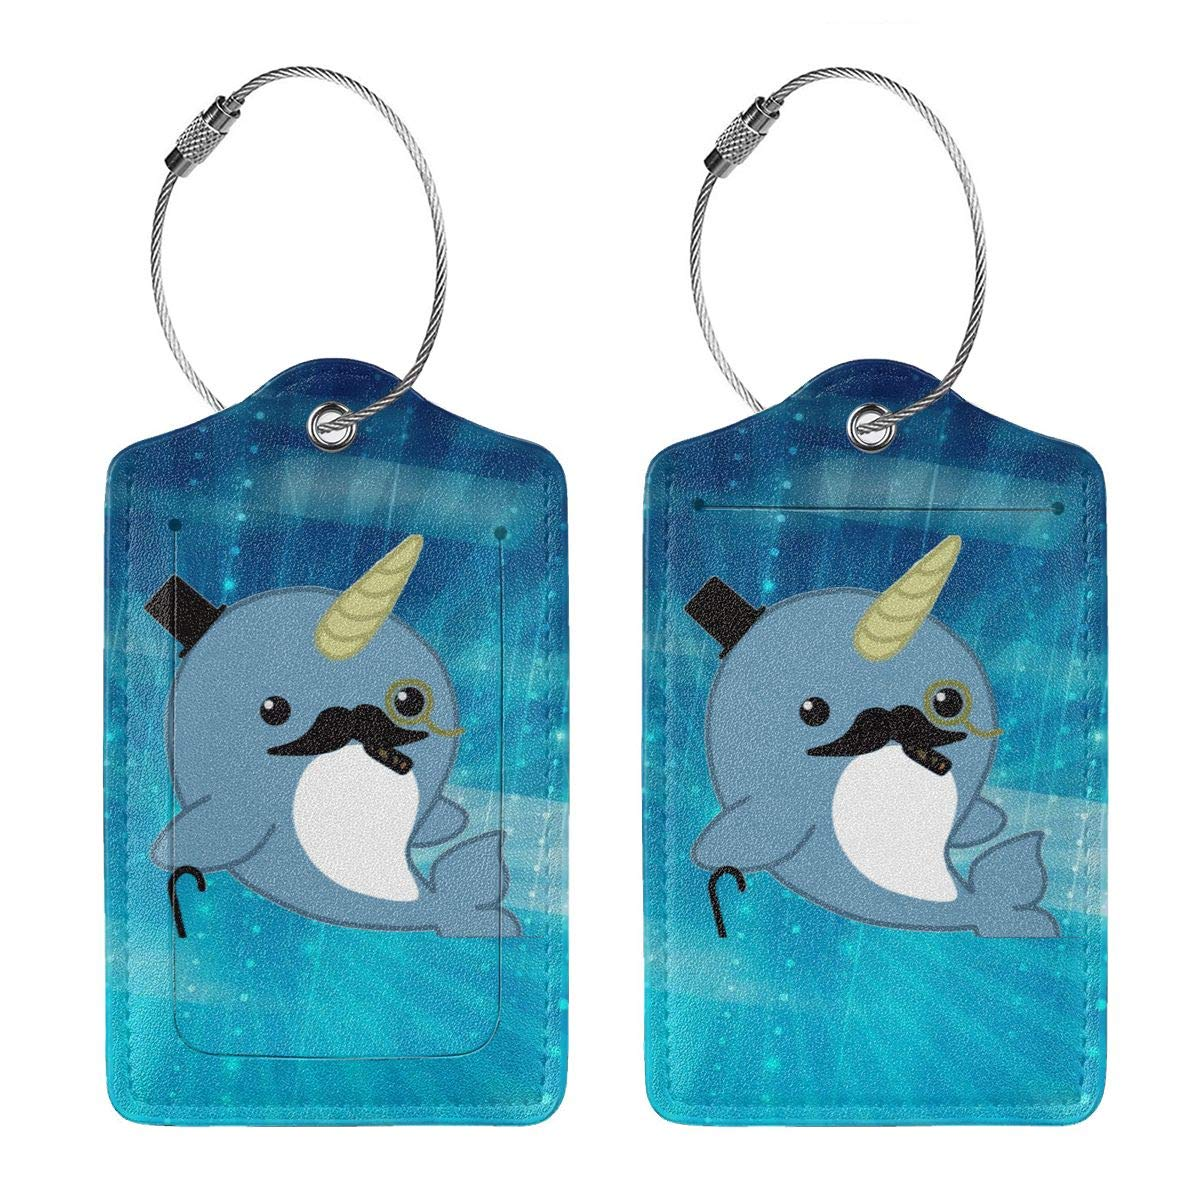 Fancy Narwhal Travel Luggage Tags With Full Privacy Cover Leather Case And Stainless Steel Loop